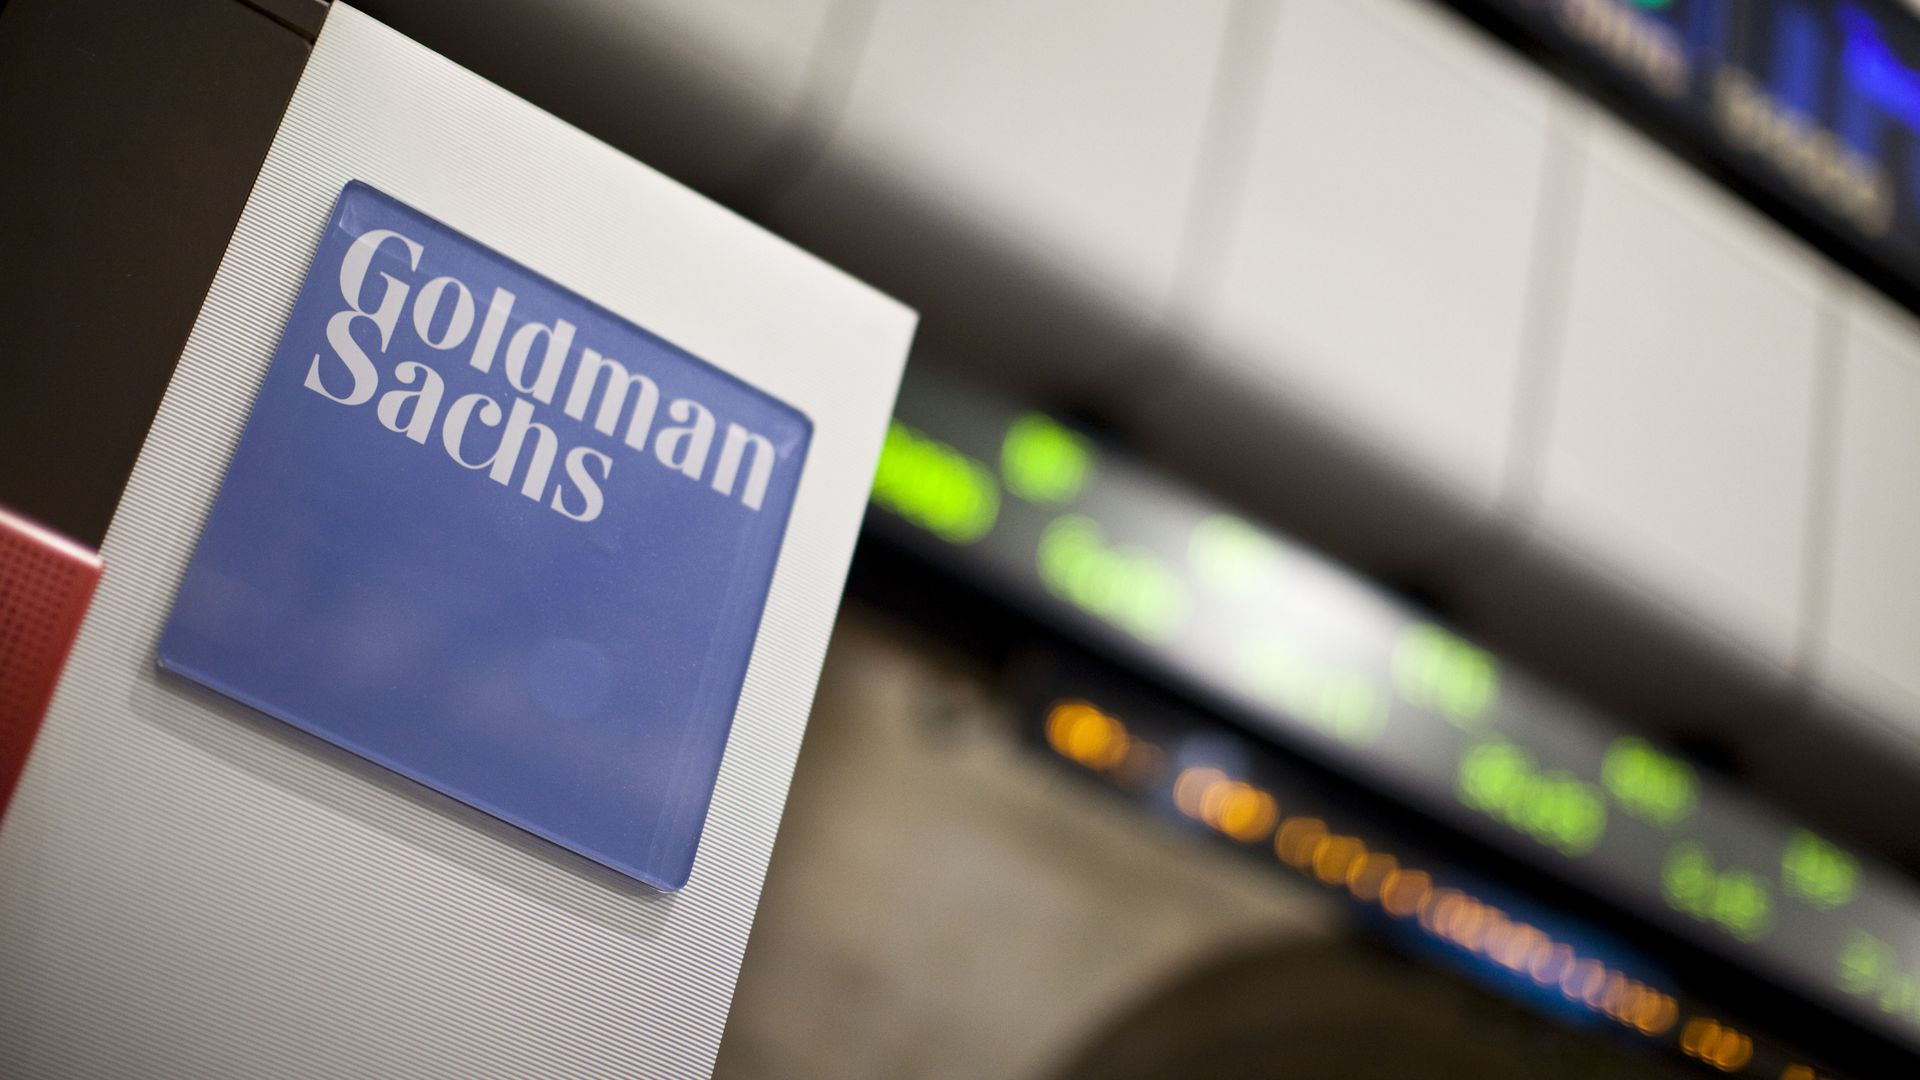 Goldman Sach's Costs Rise Up Due to Stock Fallout